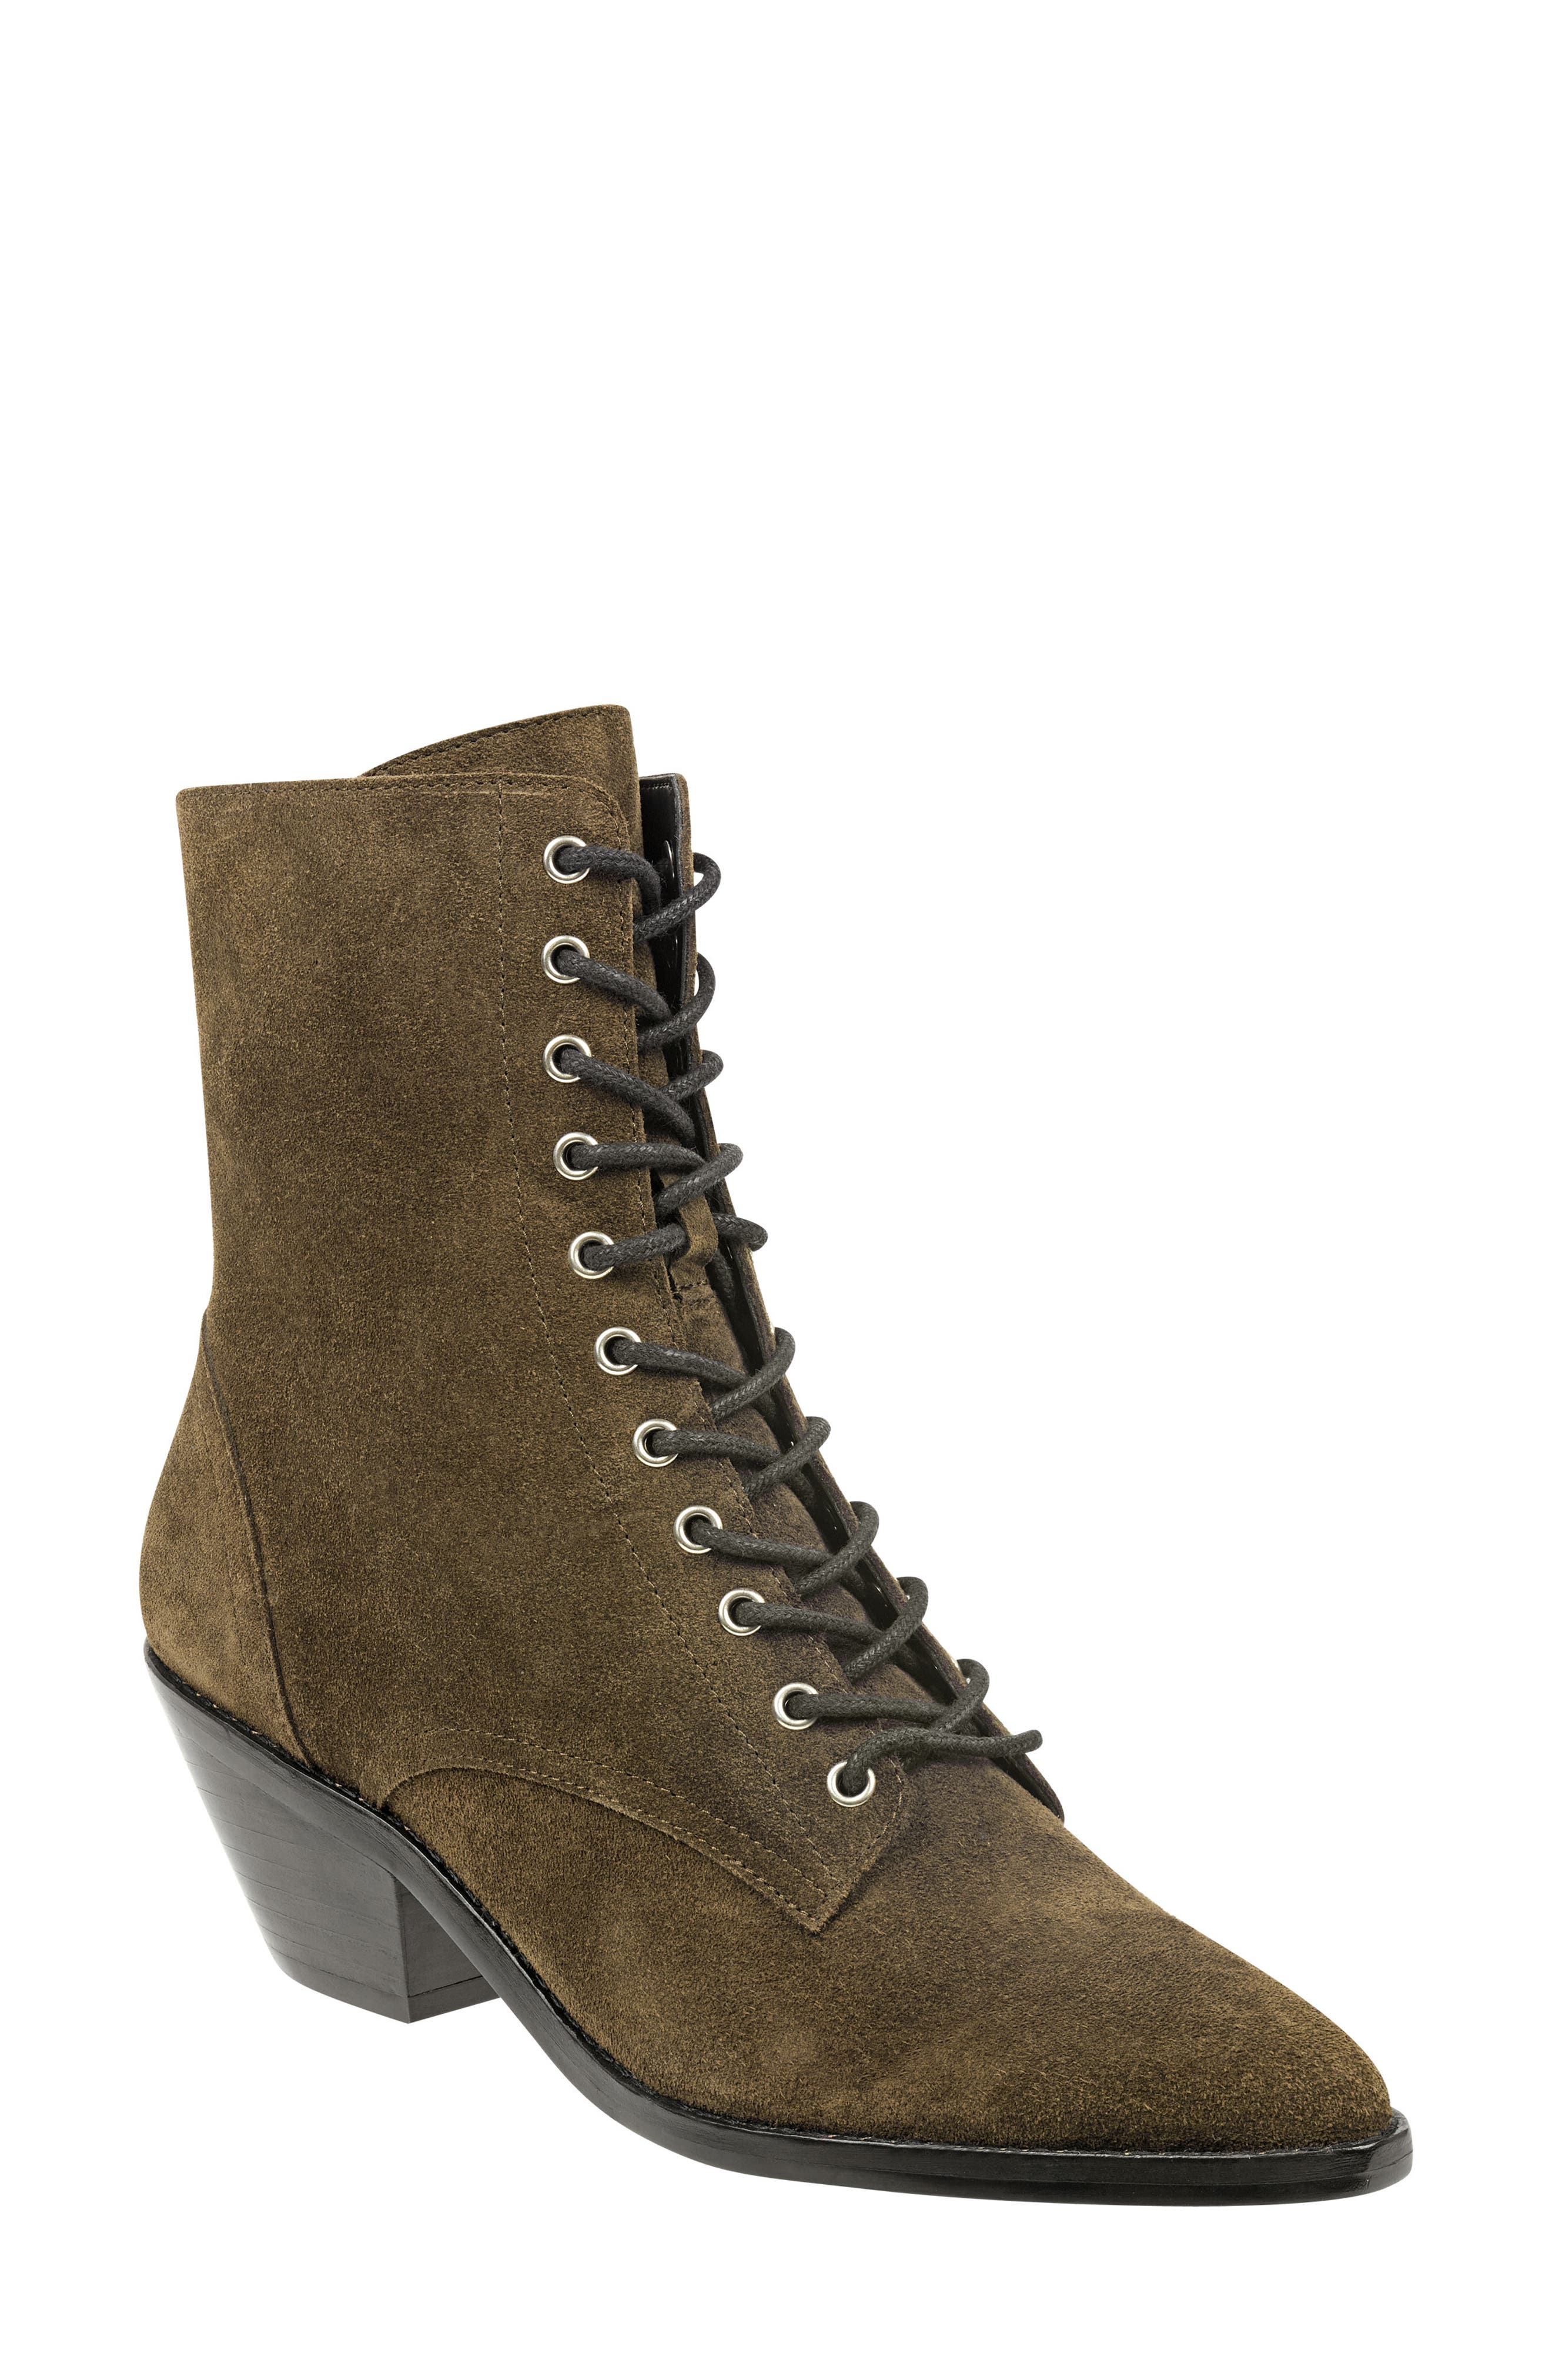 Bowie Lace-Up Boot,                             Main thumbnail 1, color,                             OLIVE SUEDE